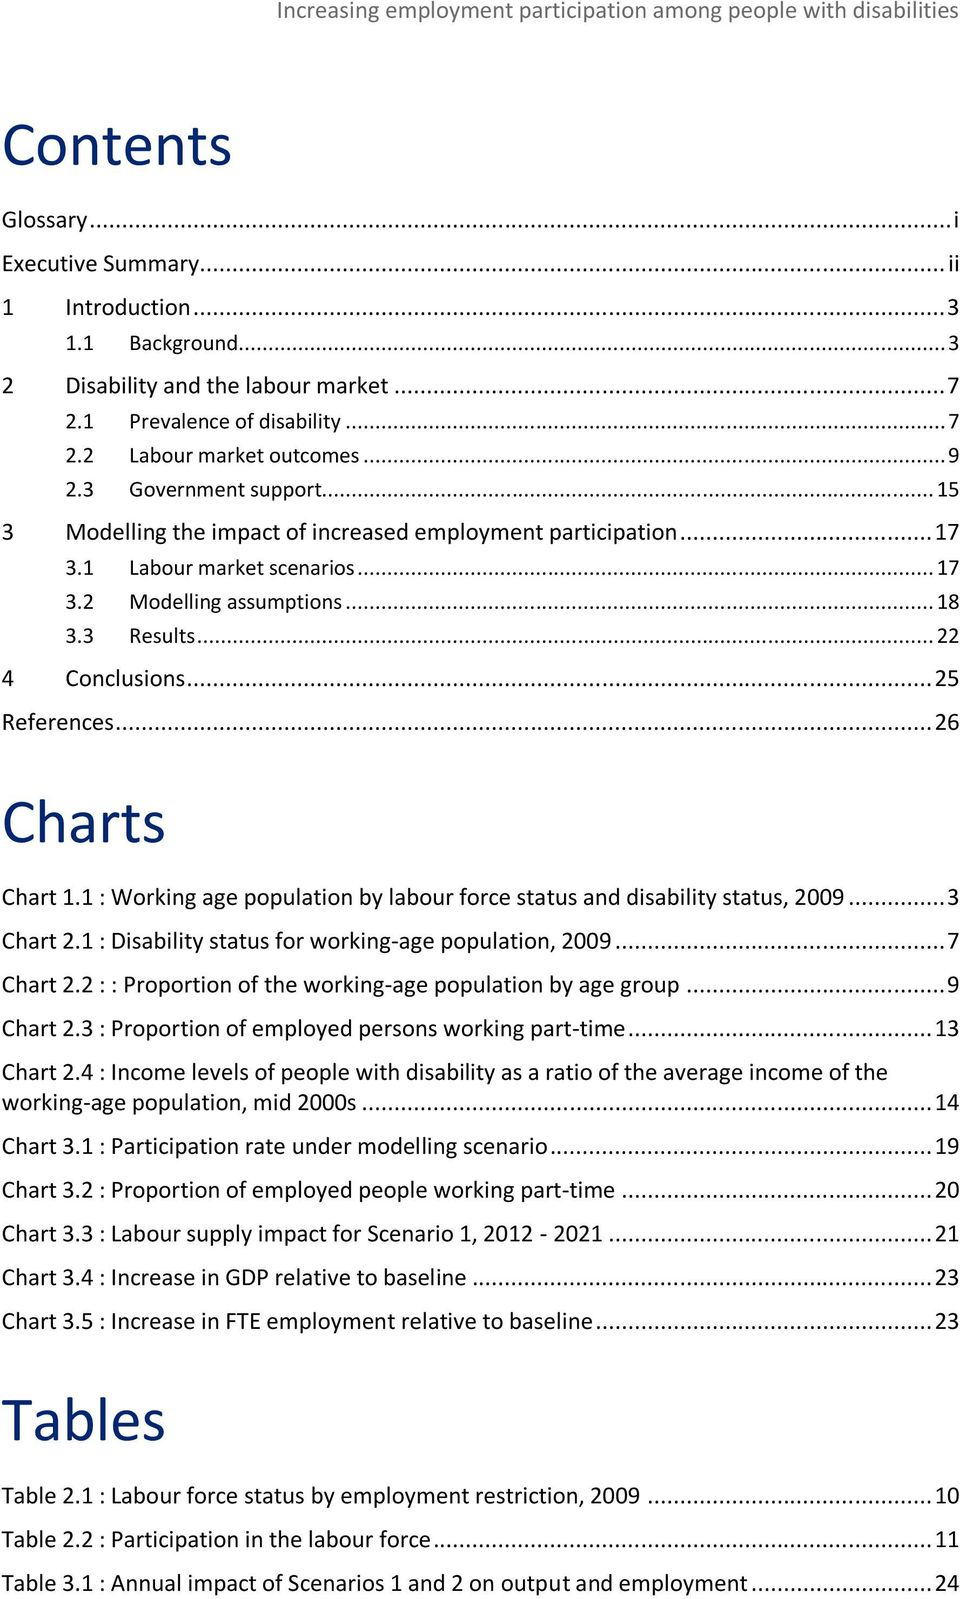 .. 25 References... 26 Charts Chart 1.1 : Working age population by labour force status and disability status, 2009... 3 Chart 2.1 : Disability status for working-age population, 2009... 7 Chart 2.